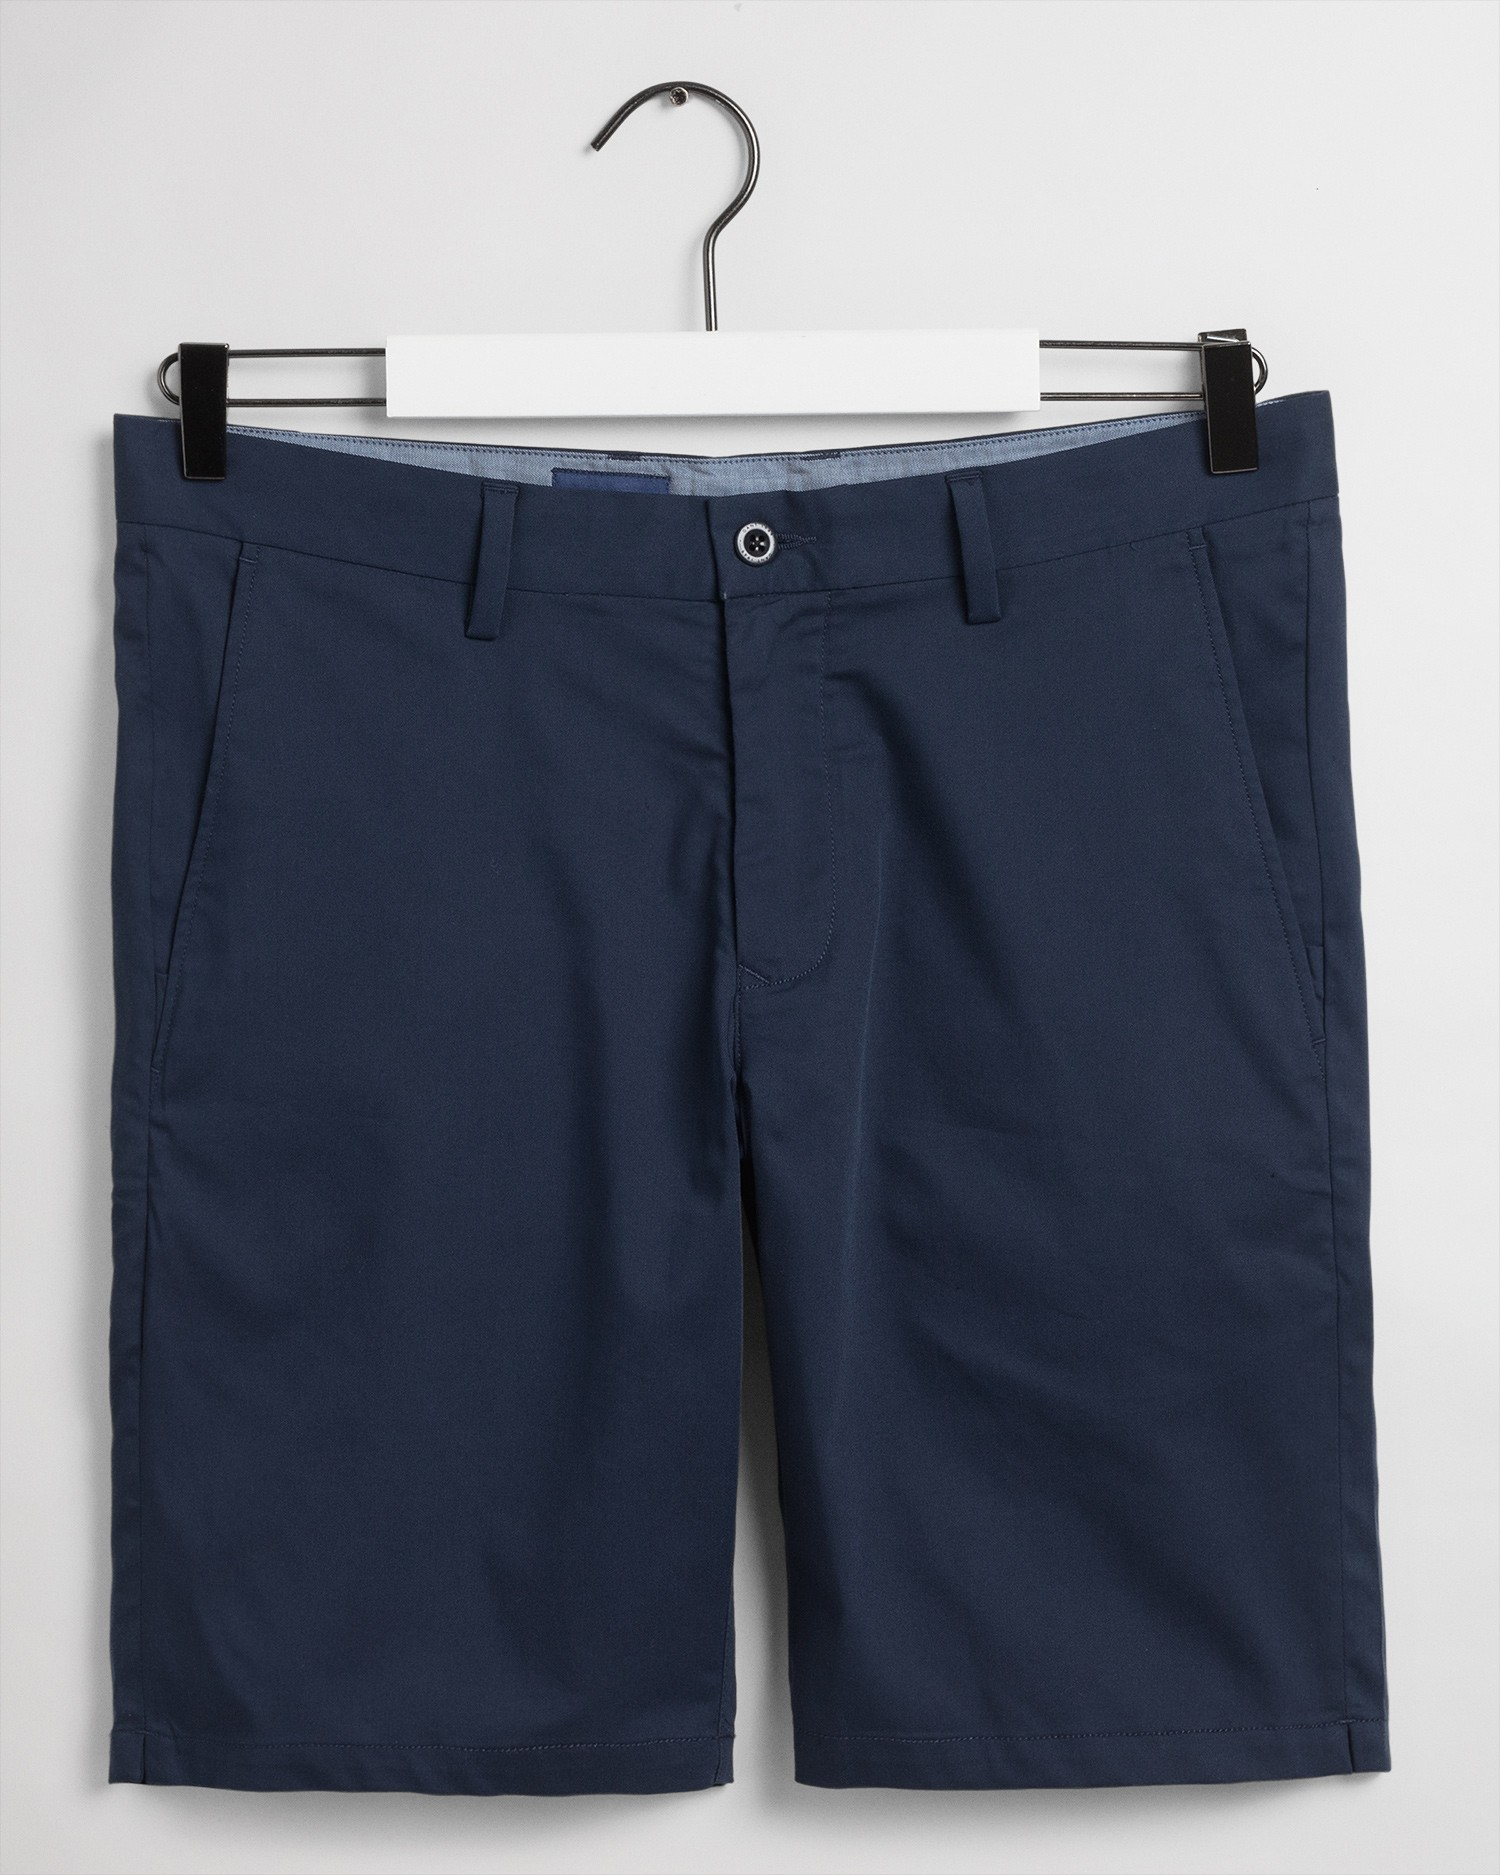 GANT Men's Bermuda Shorts - 20070